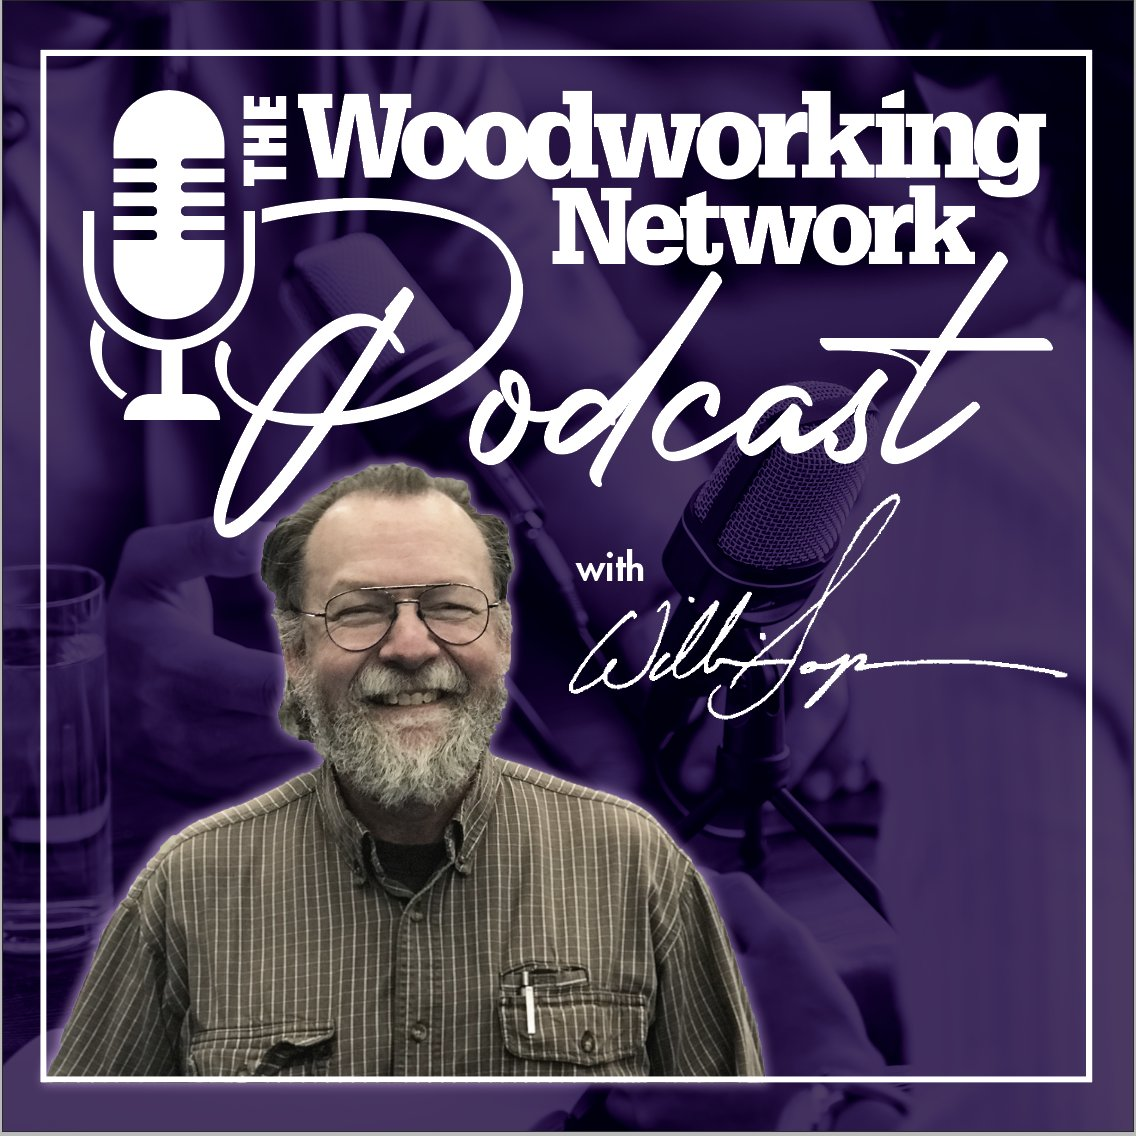 Listen to our latest #Woodworking Industry podcast: Changing the way we work, with special guest Scott Grove  #manufacturing #business #management #furniture #covid19 #coronavirus #woodshop #woodwork #wood #podcast